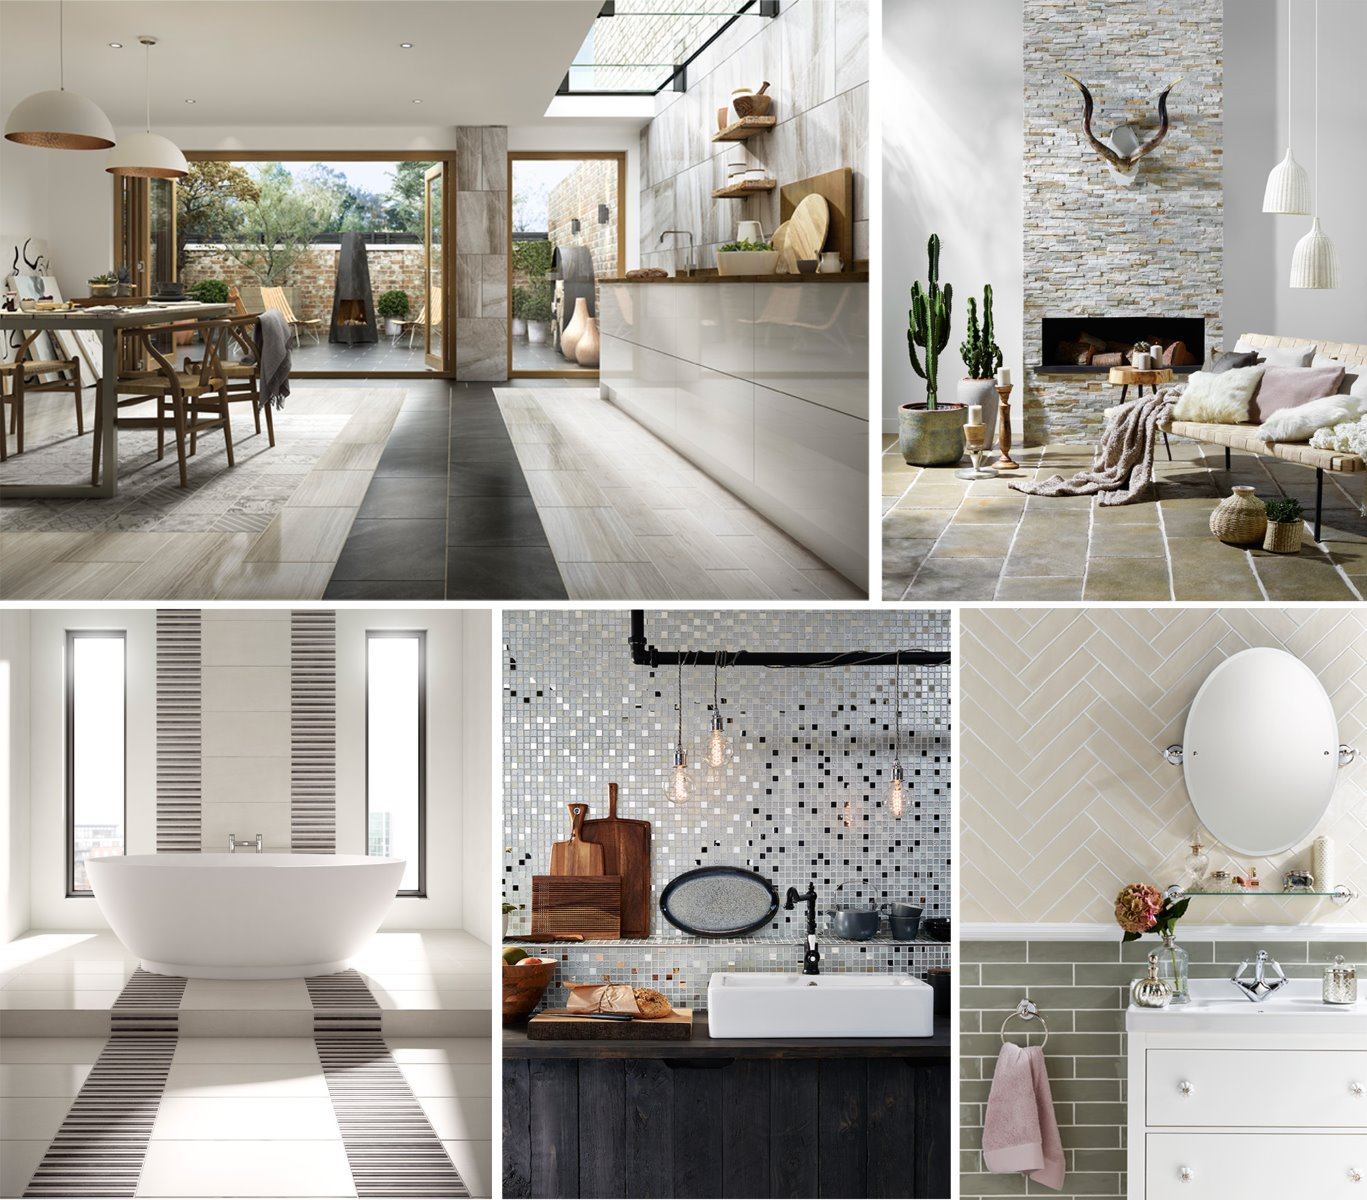 tiles_photography_cgi_studio